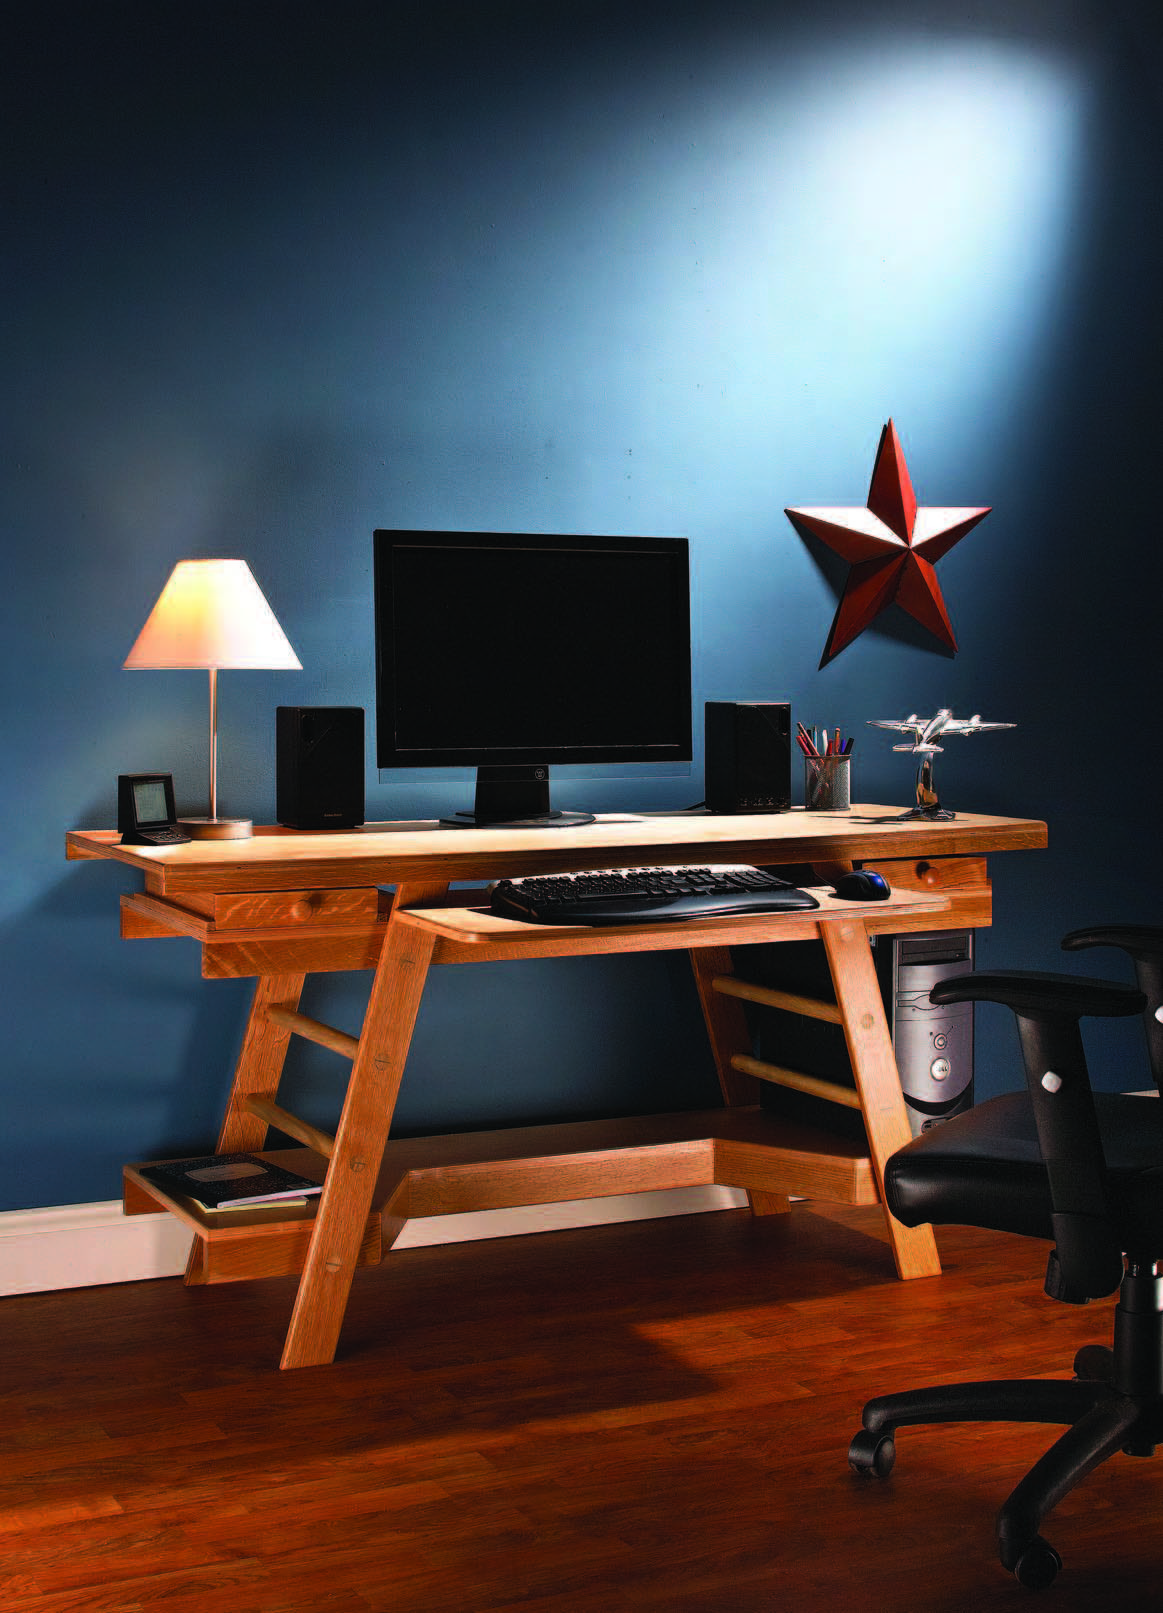 Diy Computer Desk Ideas That Will Fire Up Your Spirit Working From Home Computer Computerdesk Compute With Images Built In Computer Desk Diy Computer Desk Computer Desk